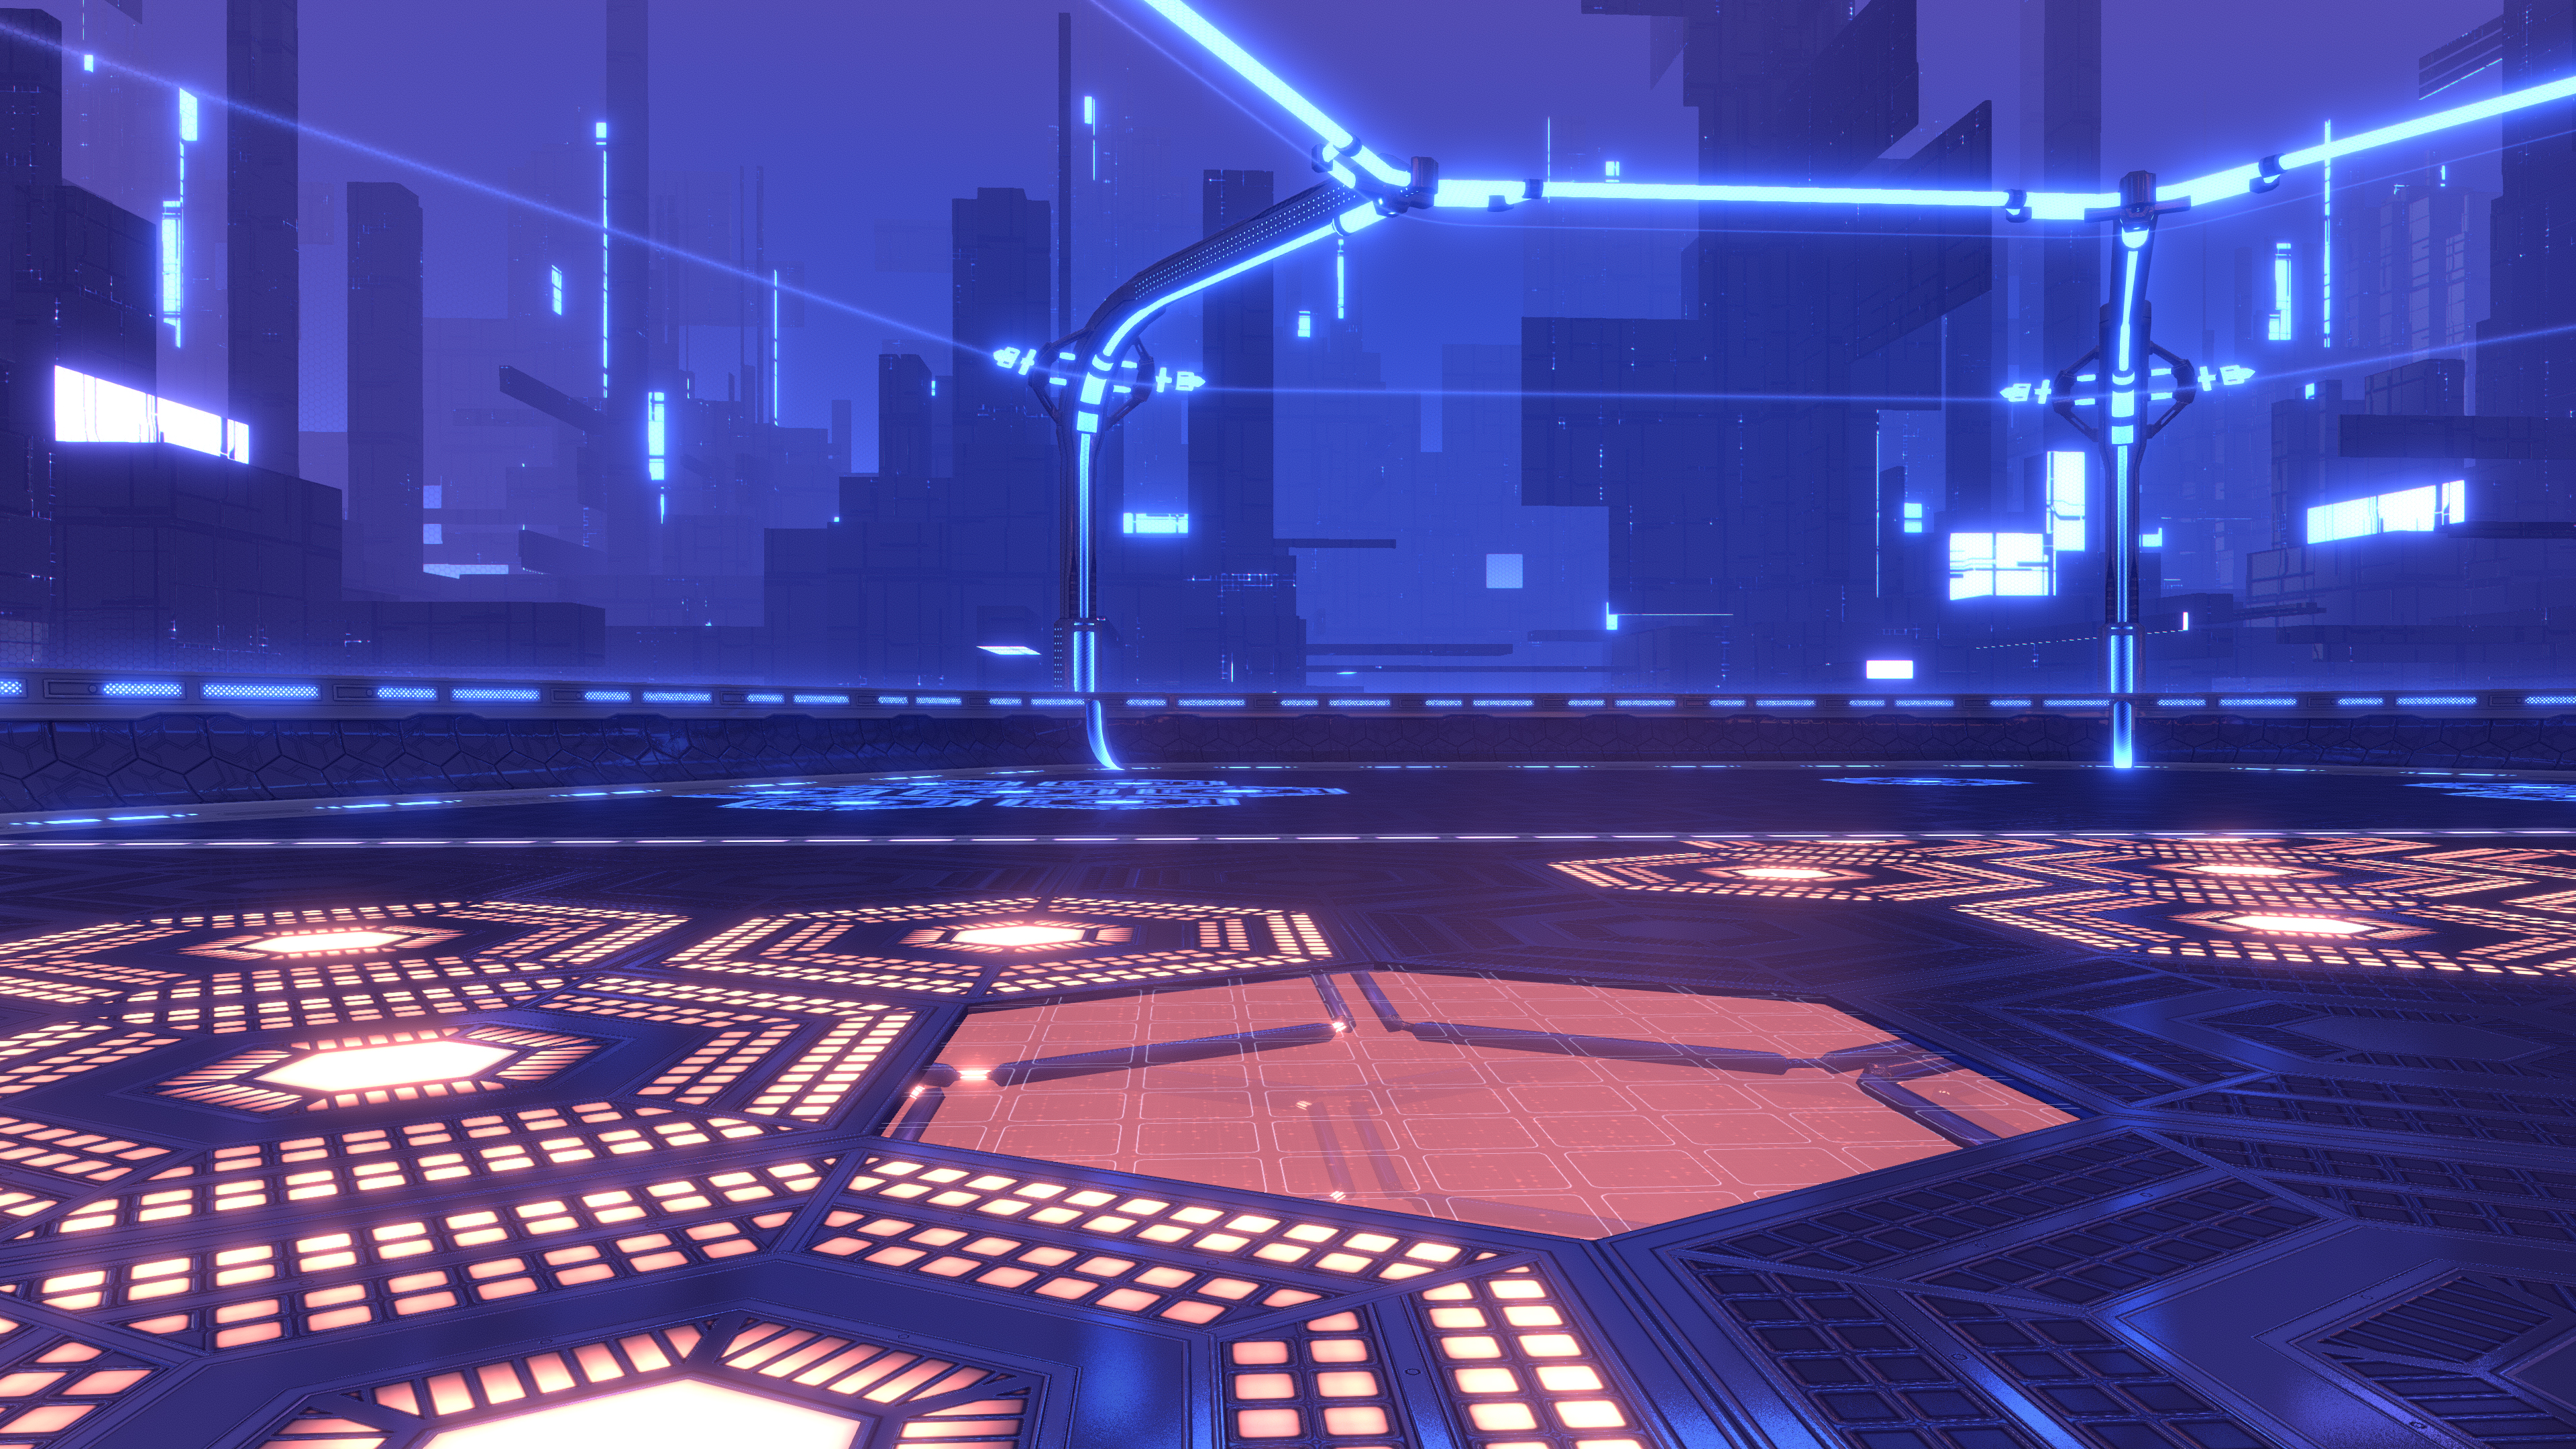 New Dropshot Mode revealed for Rocket League, watch the new trailer here